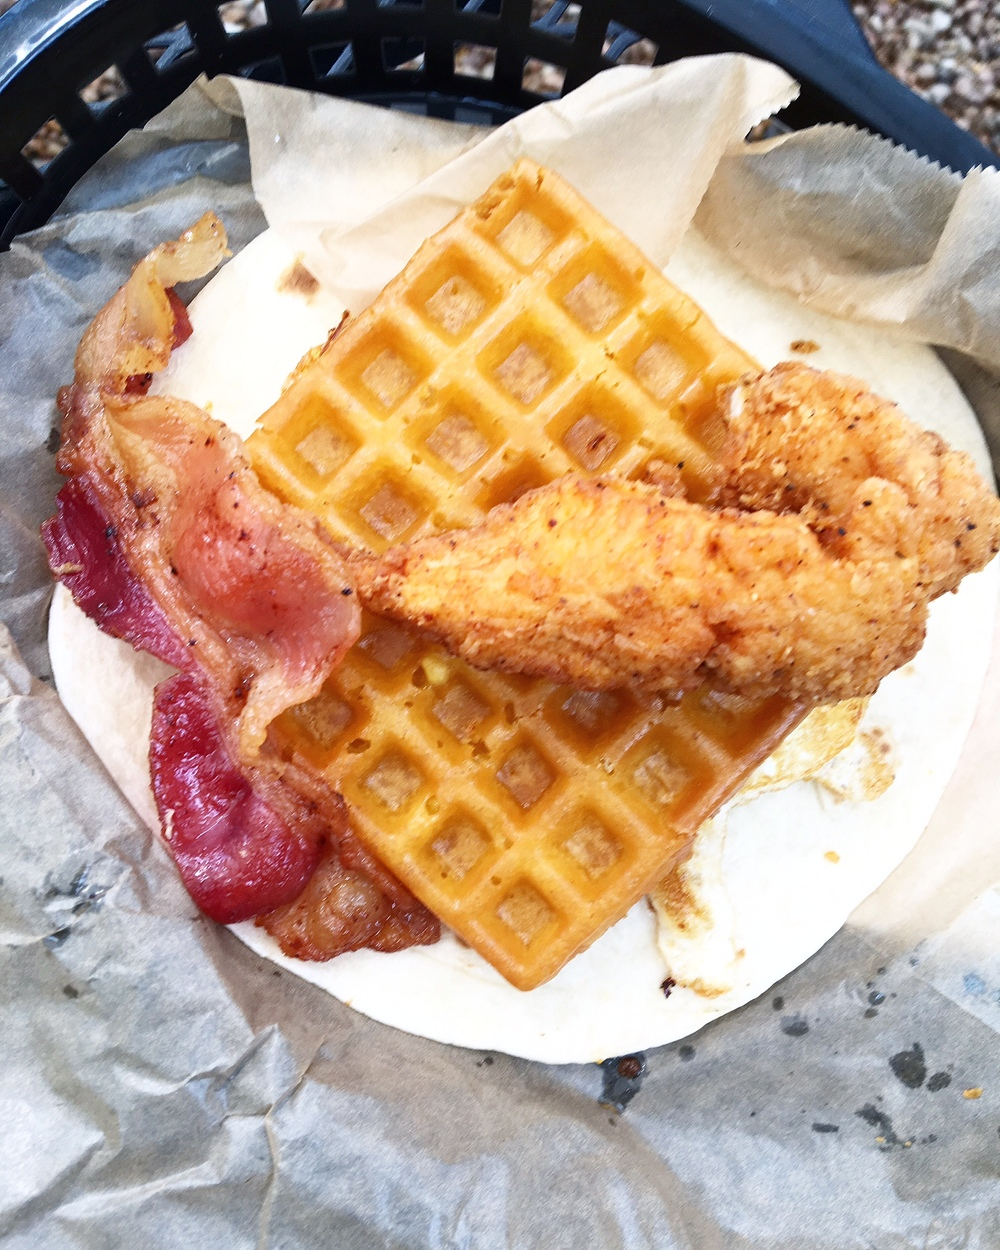 THE ROSCOE -A CRISP WAFFLE, FRIED EGG, FRIED CHICKEN, AND A SLICE OF BACON.SERVED WITH A SIDE OF MAPLE SYRUP ON A FLOUR TORTILLA.